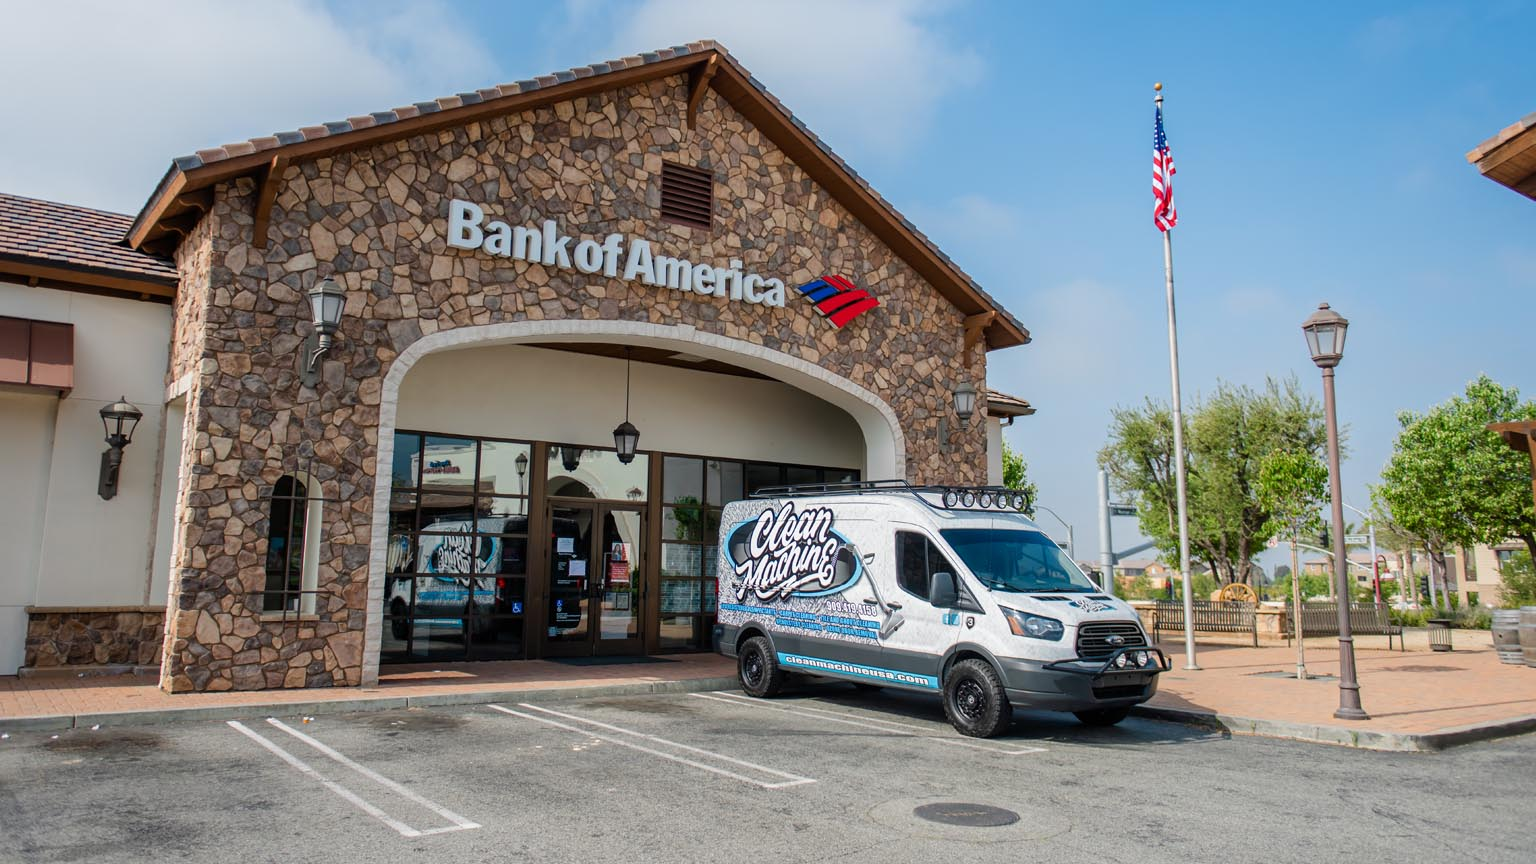 Clean service in Bank of america